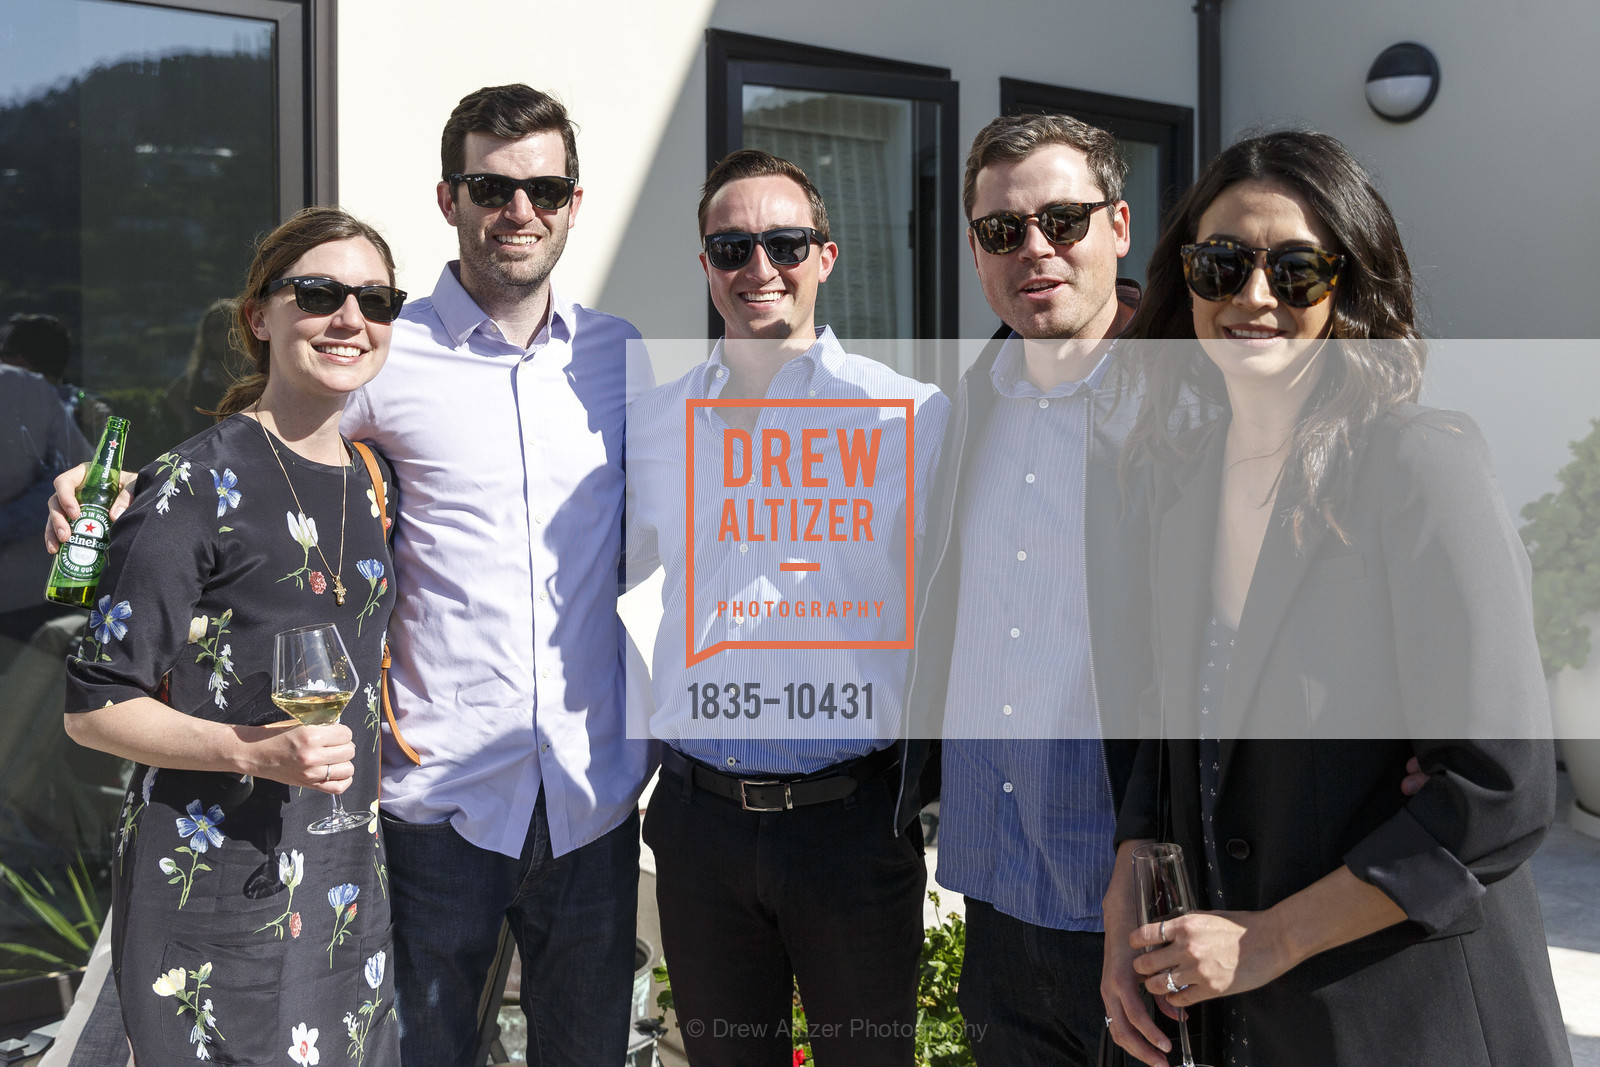 Sarah Wellman, Read Wellman, Payton Harrod, Brian Martineau, Gabby Hernandez, Liz and Dan's Engagement Party, Private Residence, April 14th, 2018